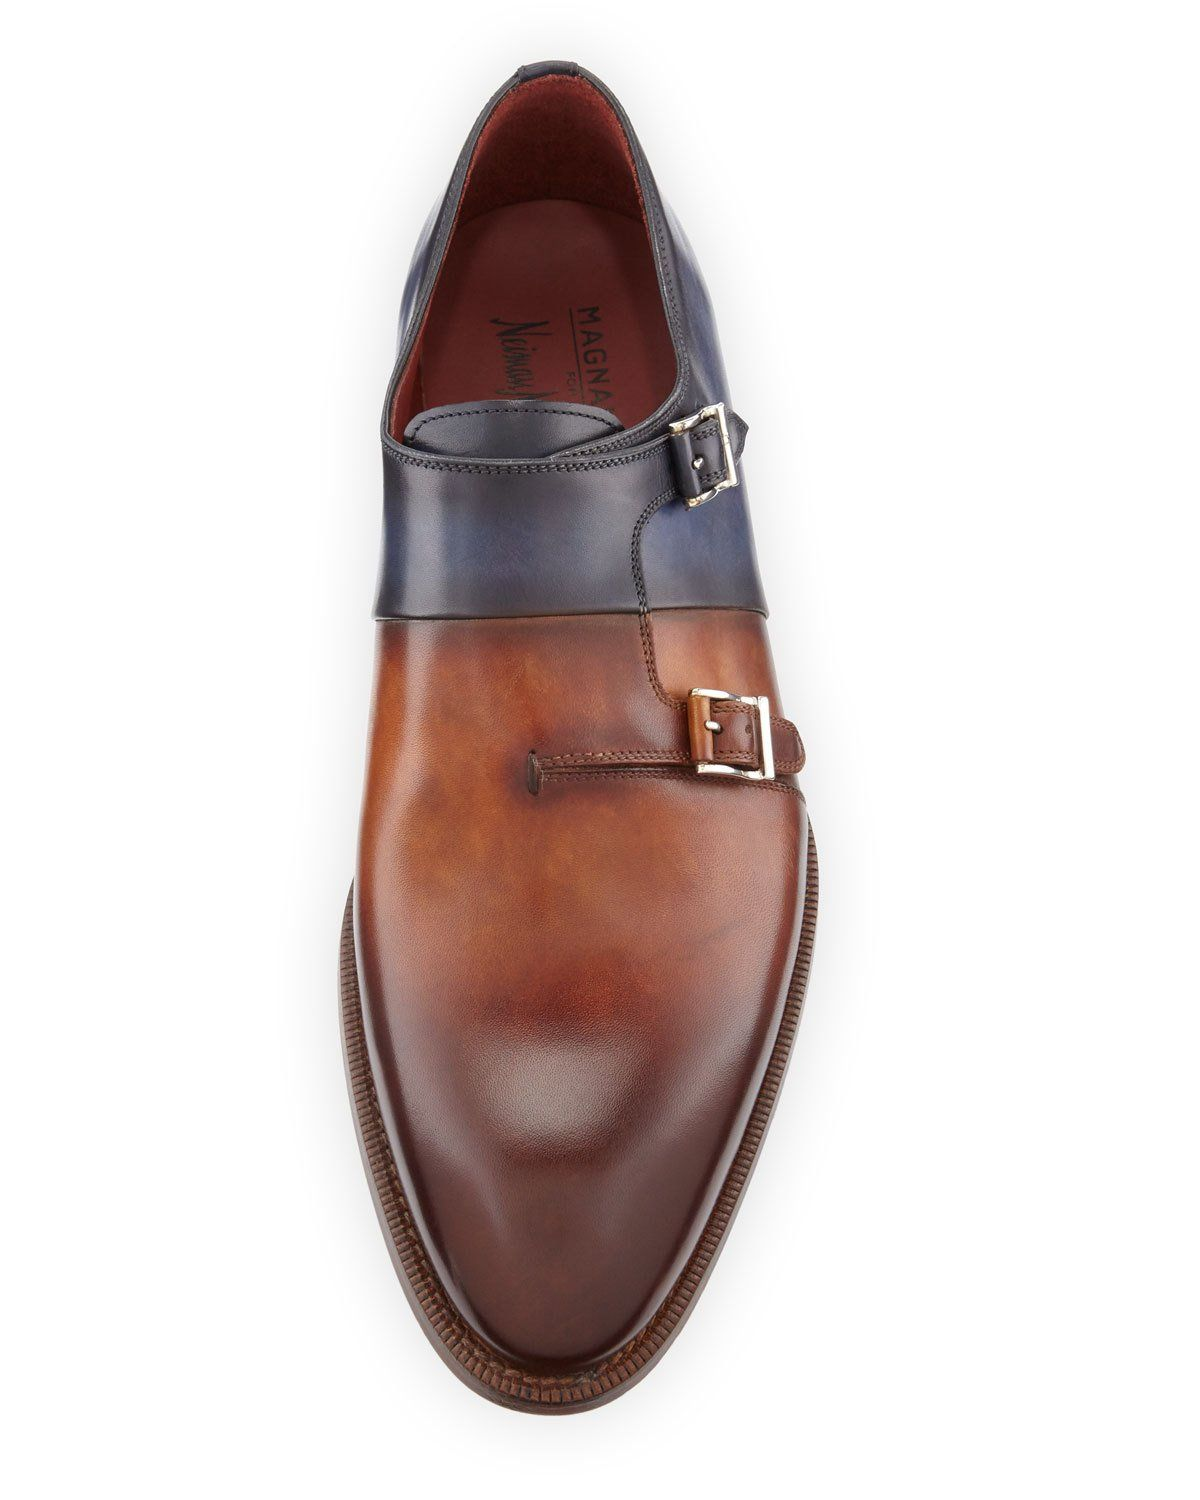 45e10623fa1 Two-Tone Leather Double-Monk Shoe | Products in 2019 | Shoes, Neiman ...